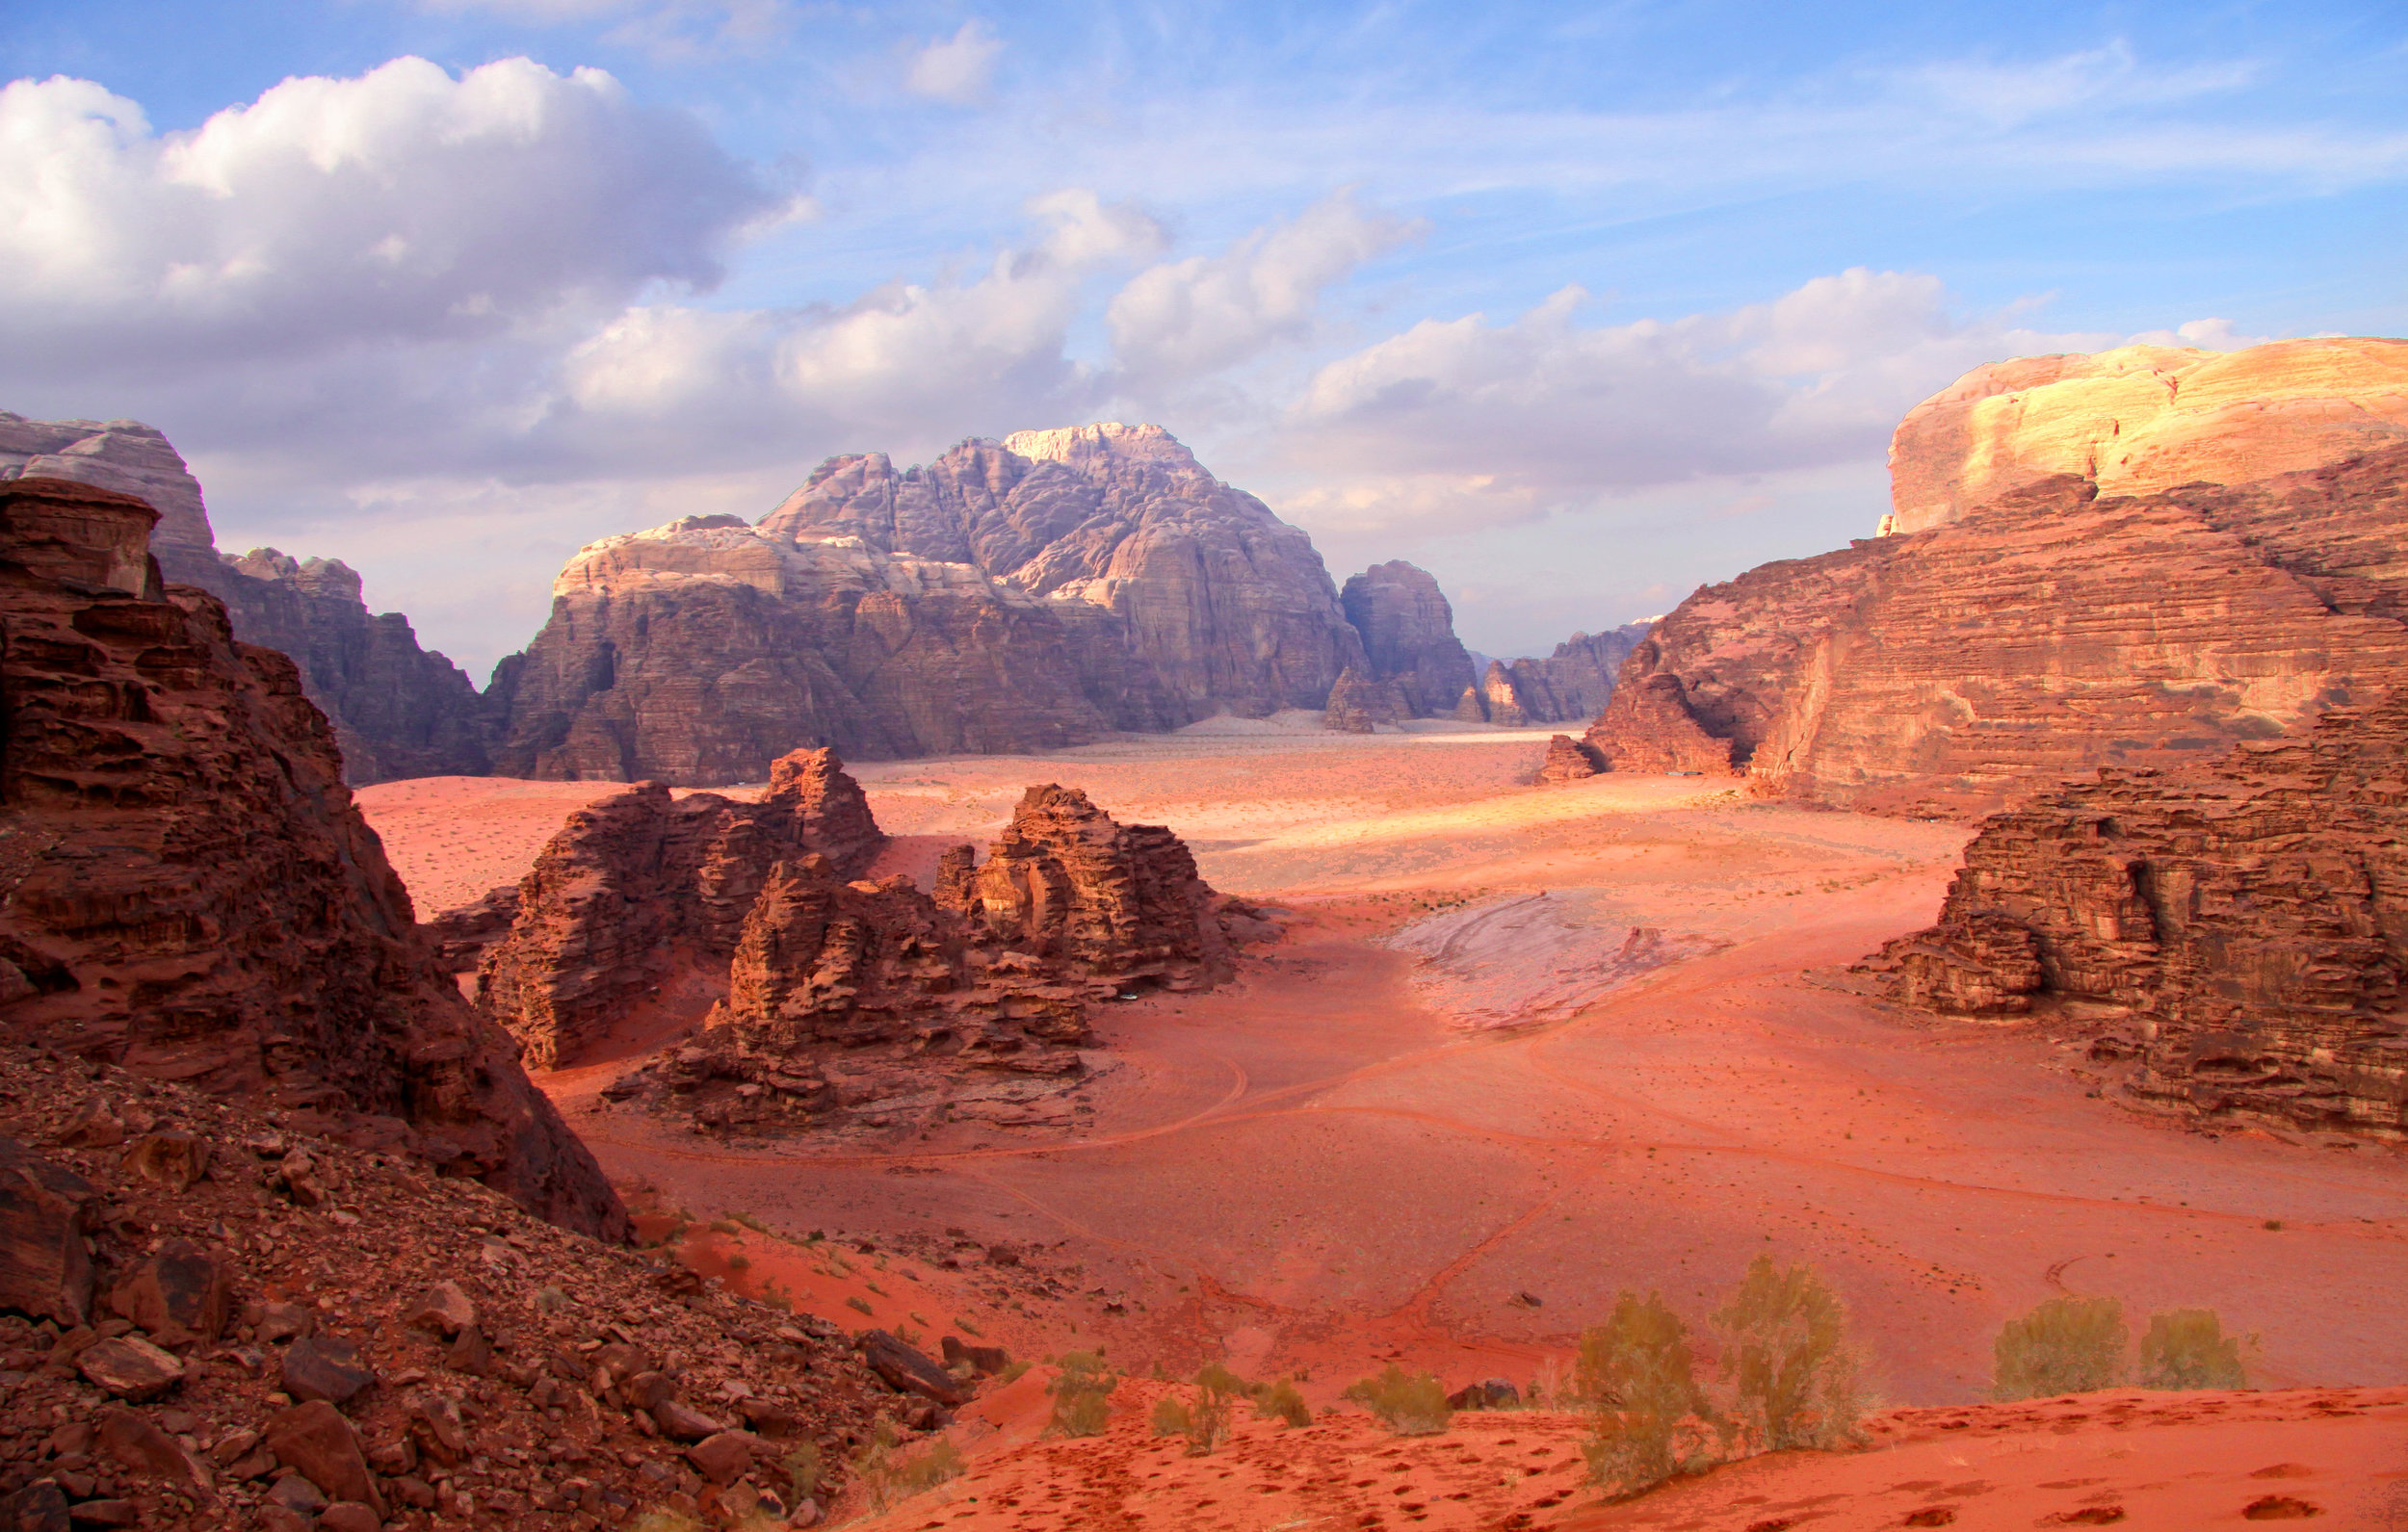 Wadi Rum - Frequently compared to planet Mars because of its red sand.